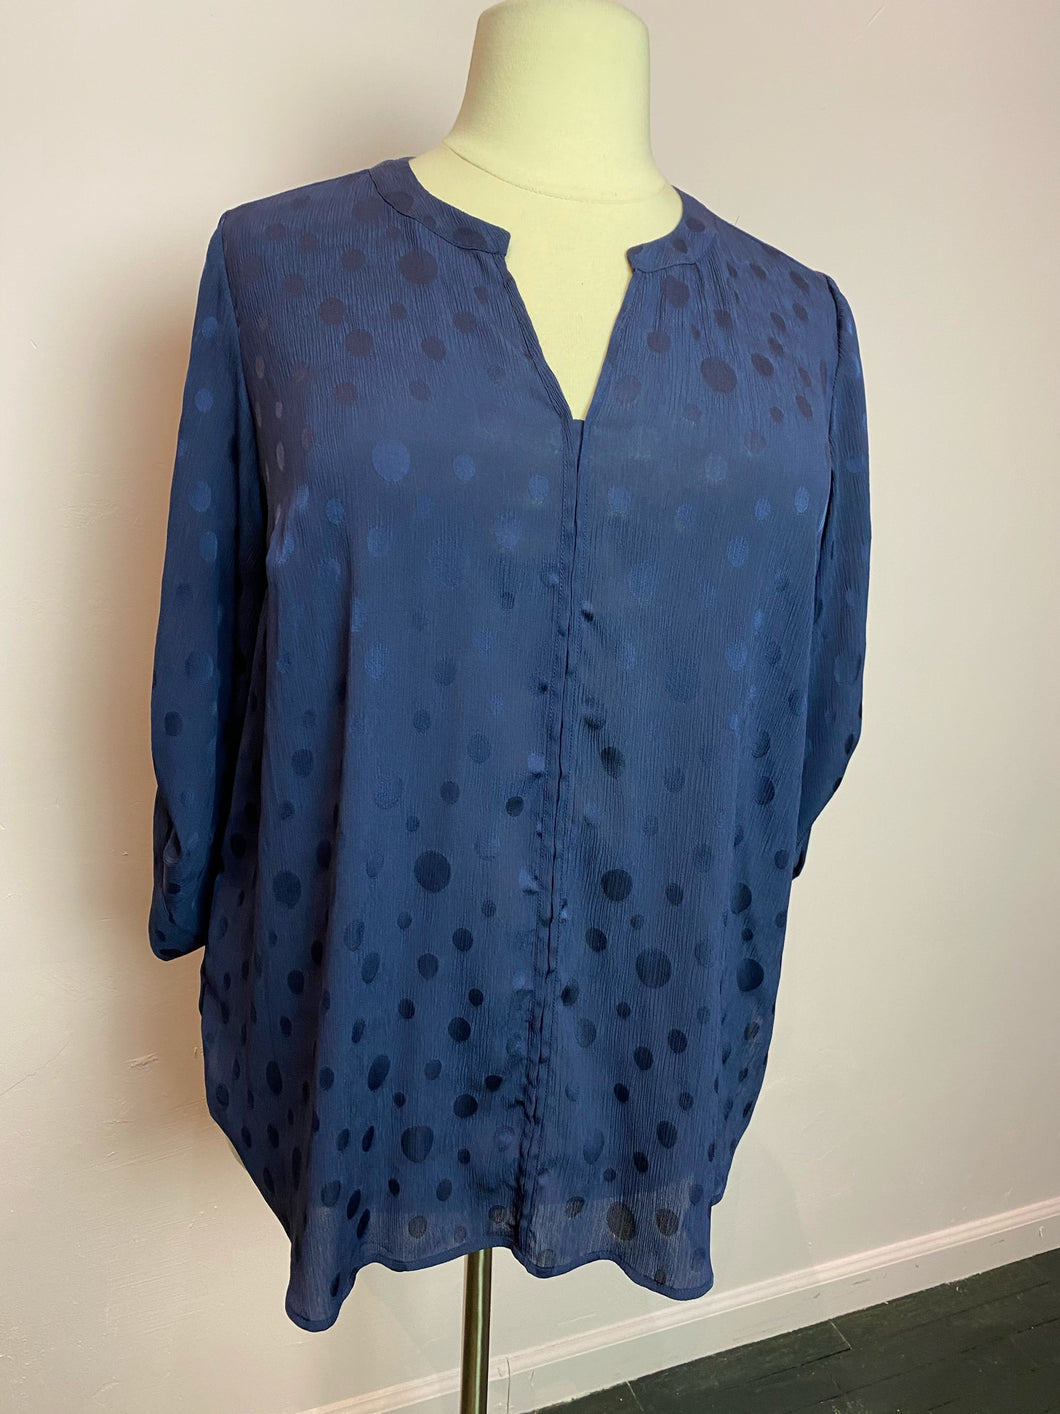 Navy Blue Burnout Polka Dot 41 Hawthorn Top, Size 3X